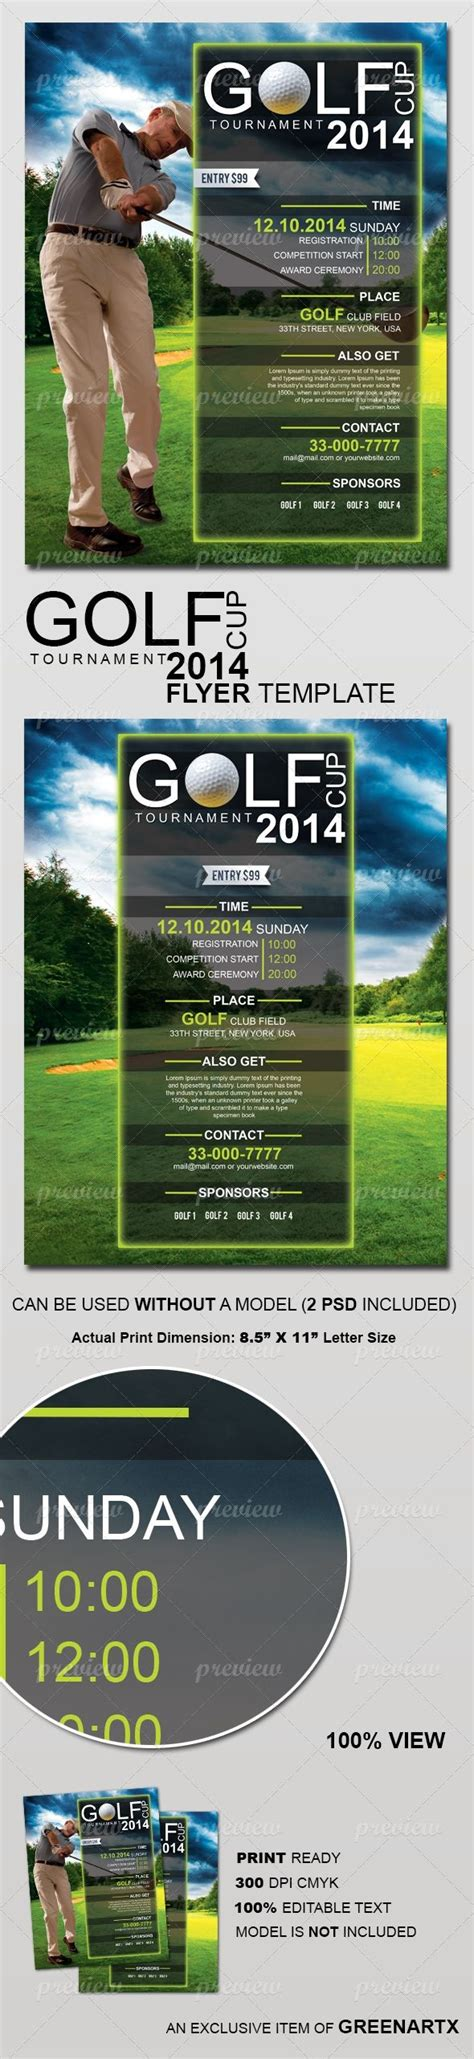 flyer design inspiration pinterest golf cup tournament flyer template print pinterest